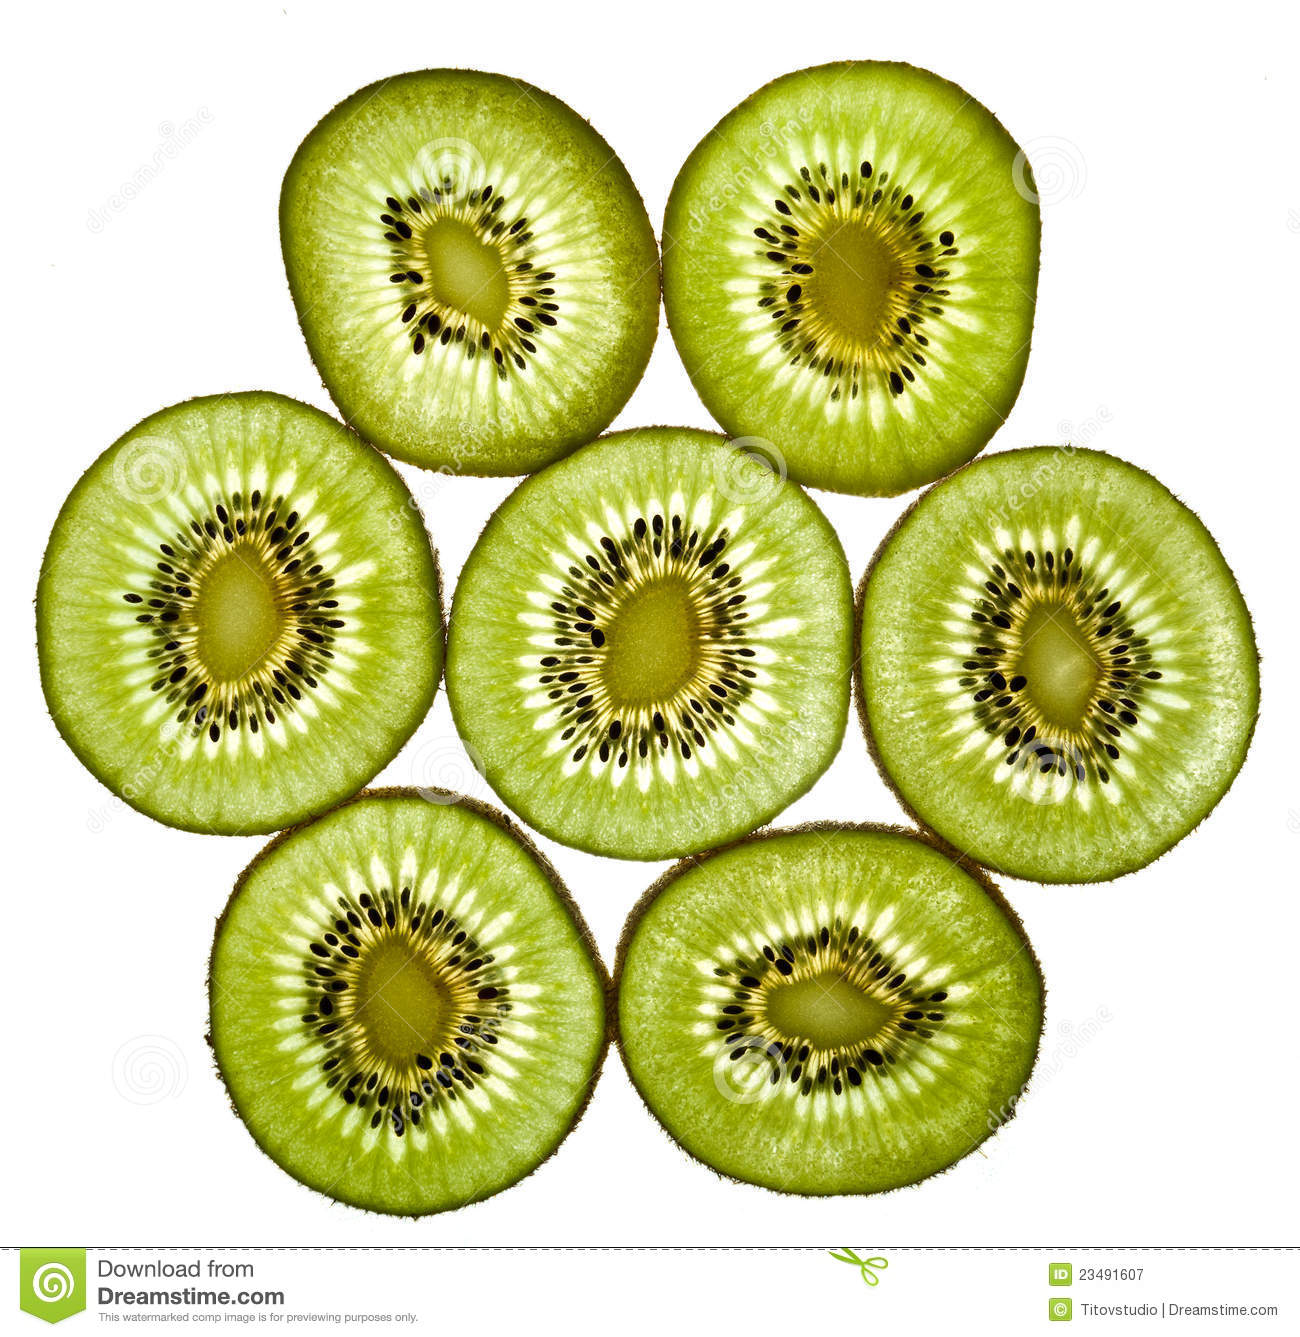 Close up of sliced pieces of kiwifruit